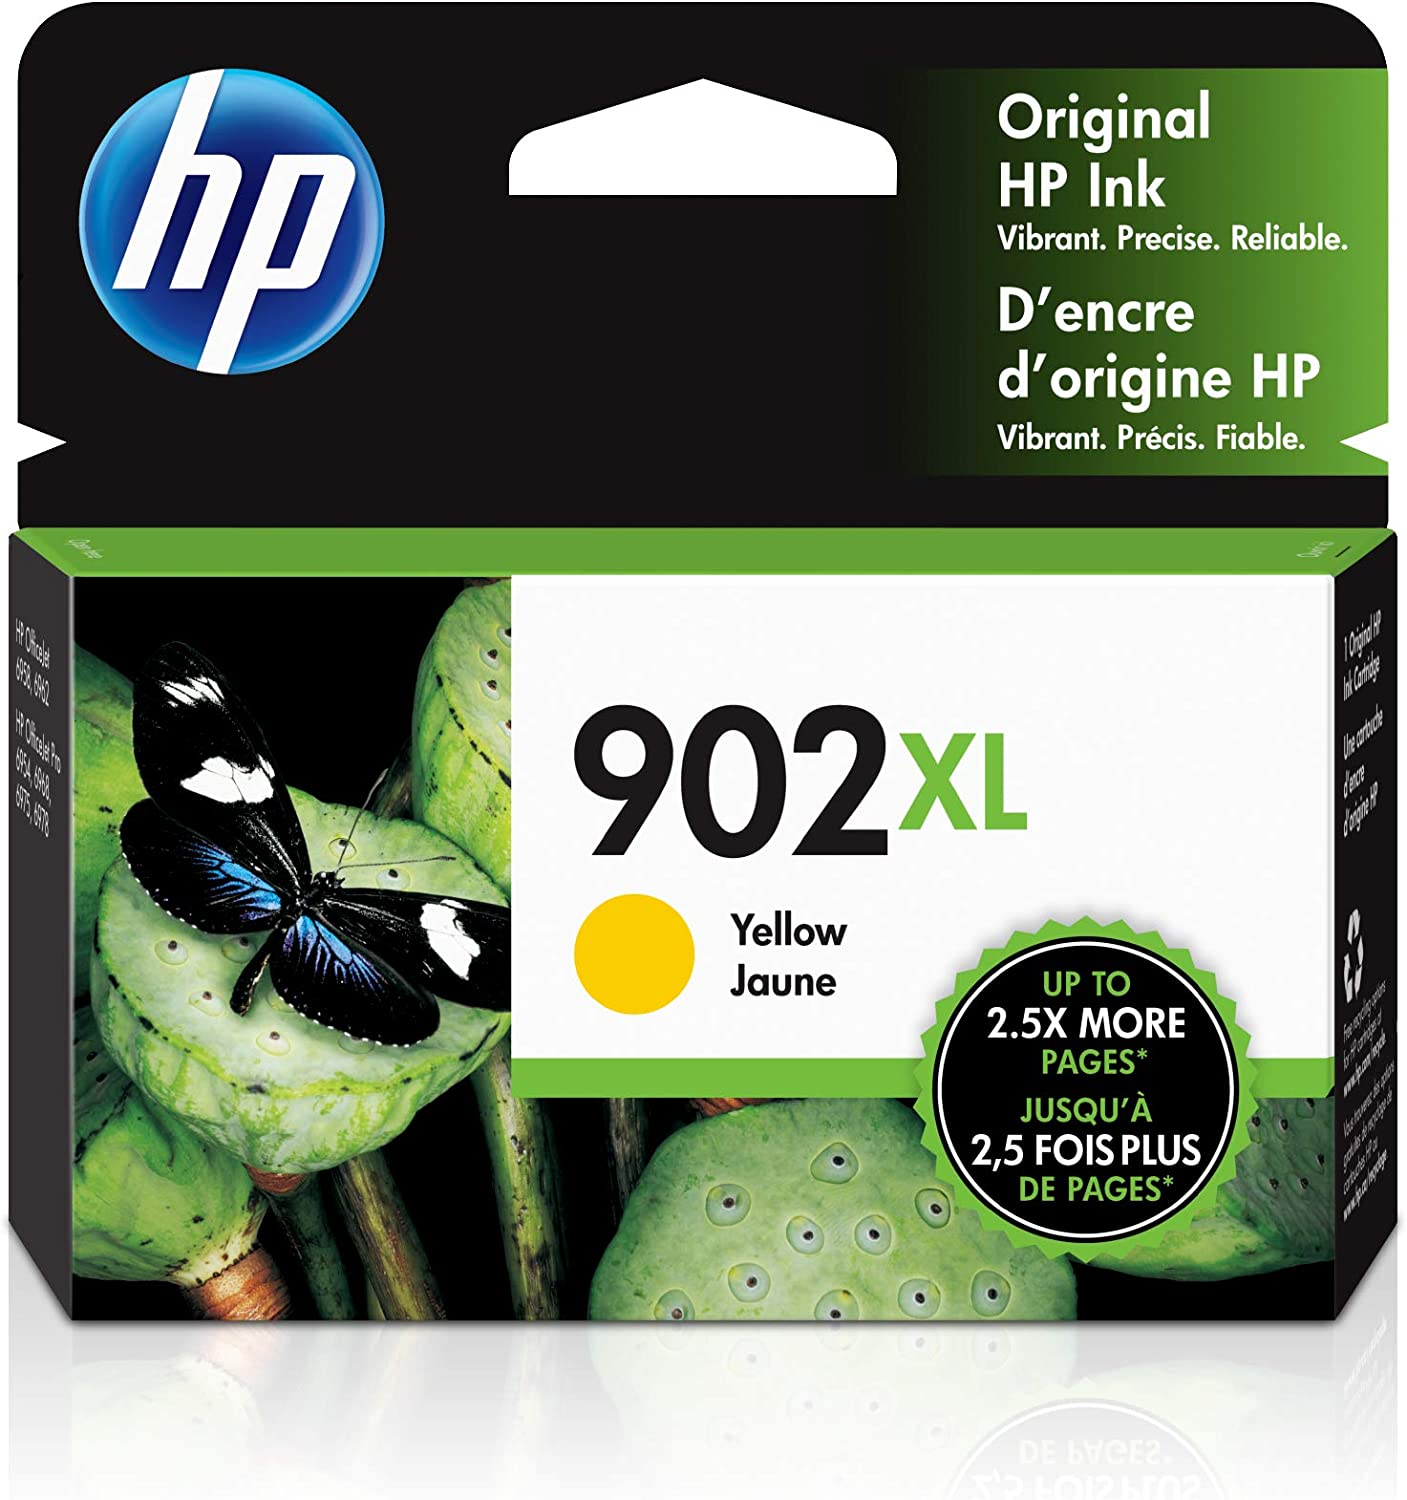 HP 902XL | Ink Cartridge | Yellow | Works with HP OfficeJet 6900 Series, HP OfficeJet Pro 6900 Series | T6M10AN